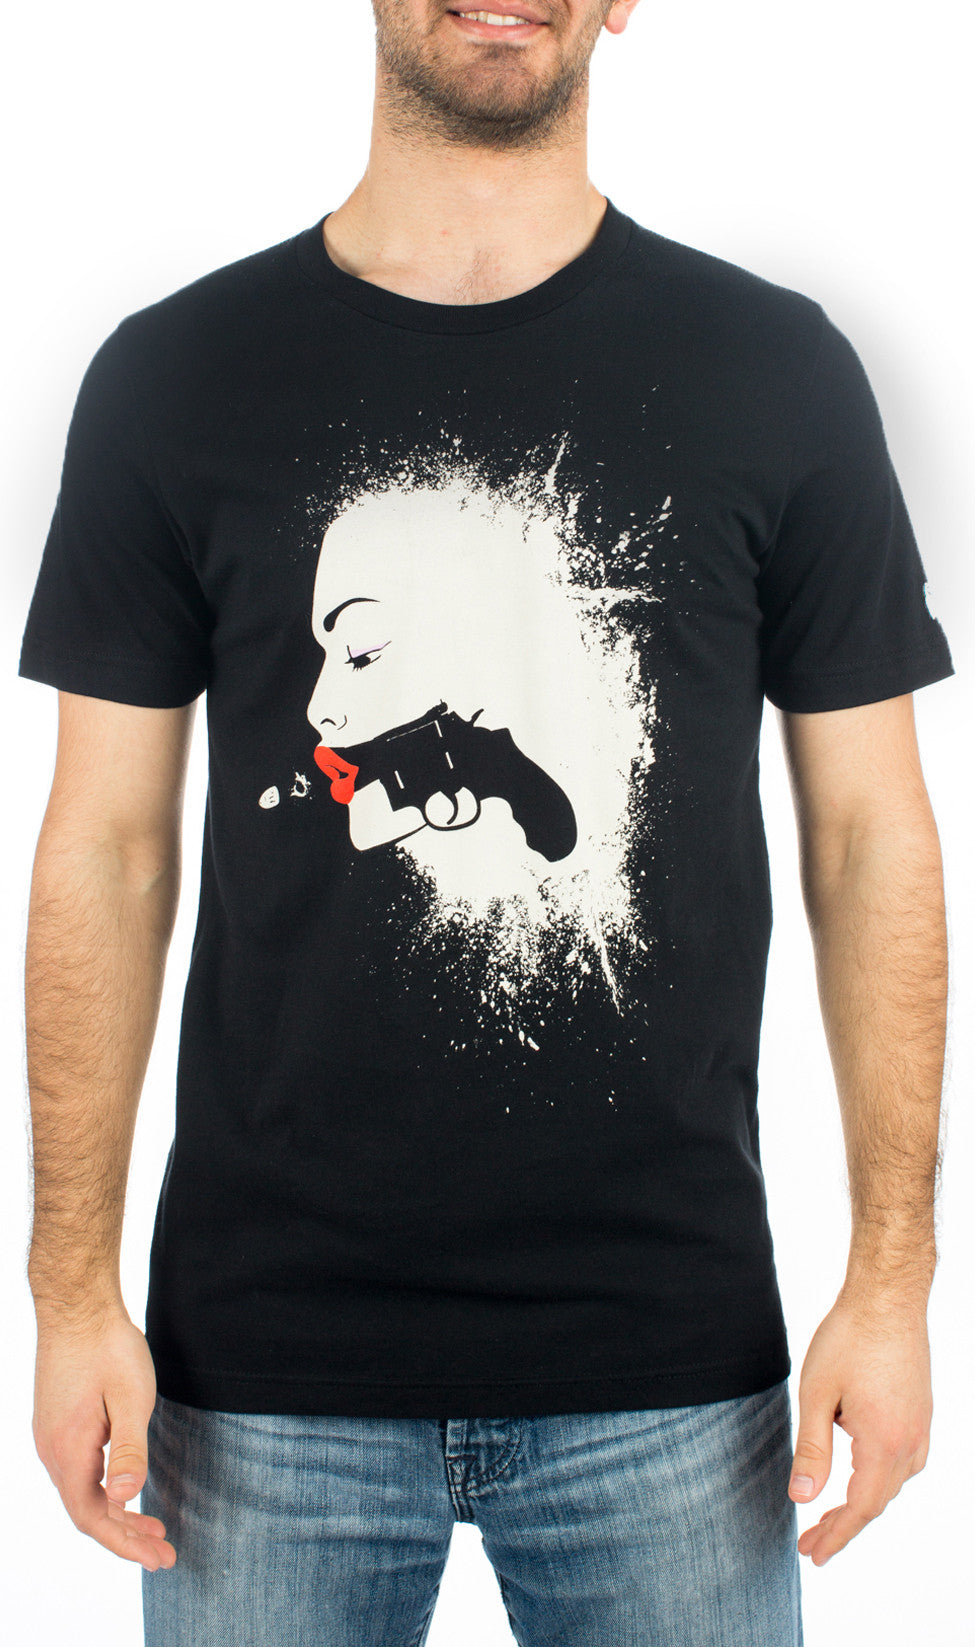 Kiss of Death Shirt - ARKA Urban Streetwear Clothing b90a16d66244